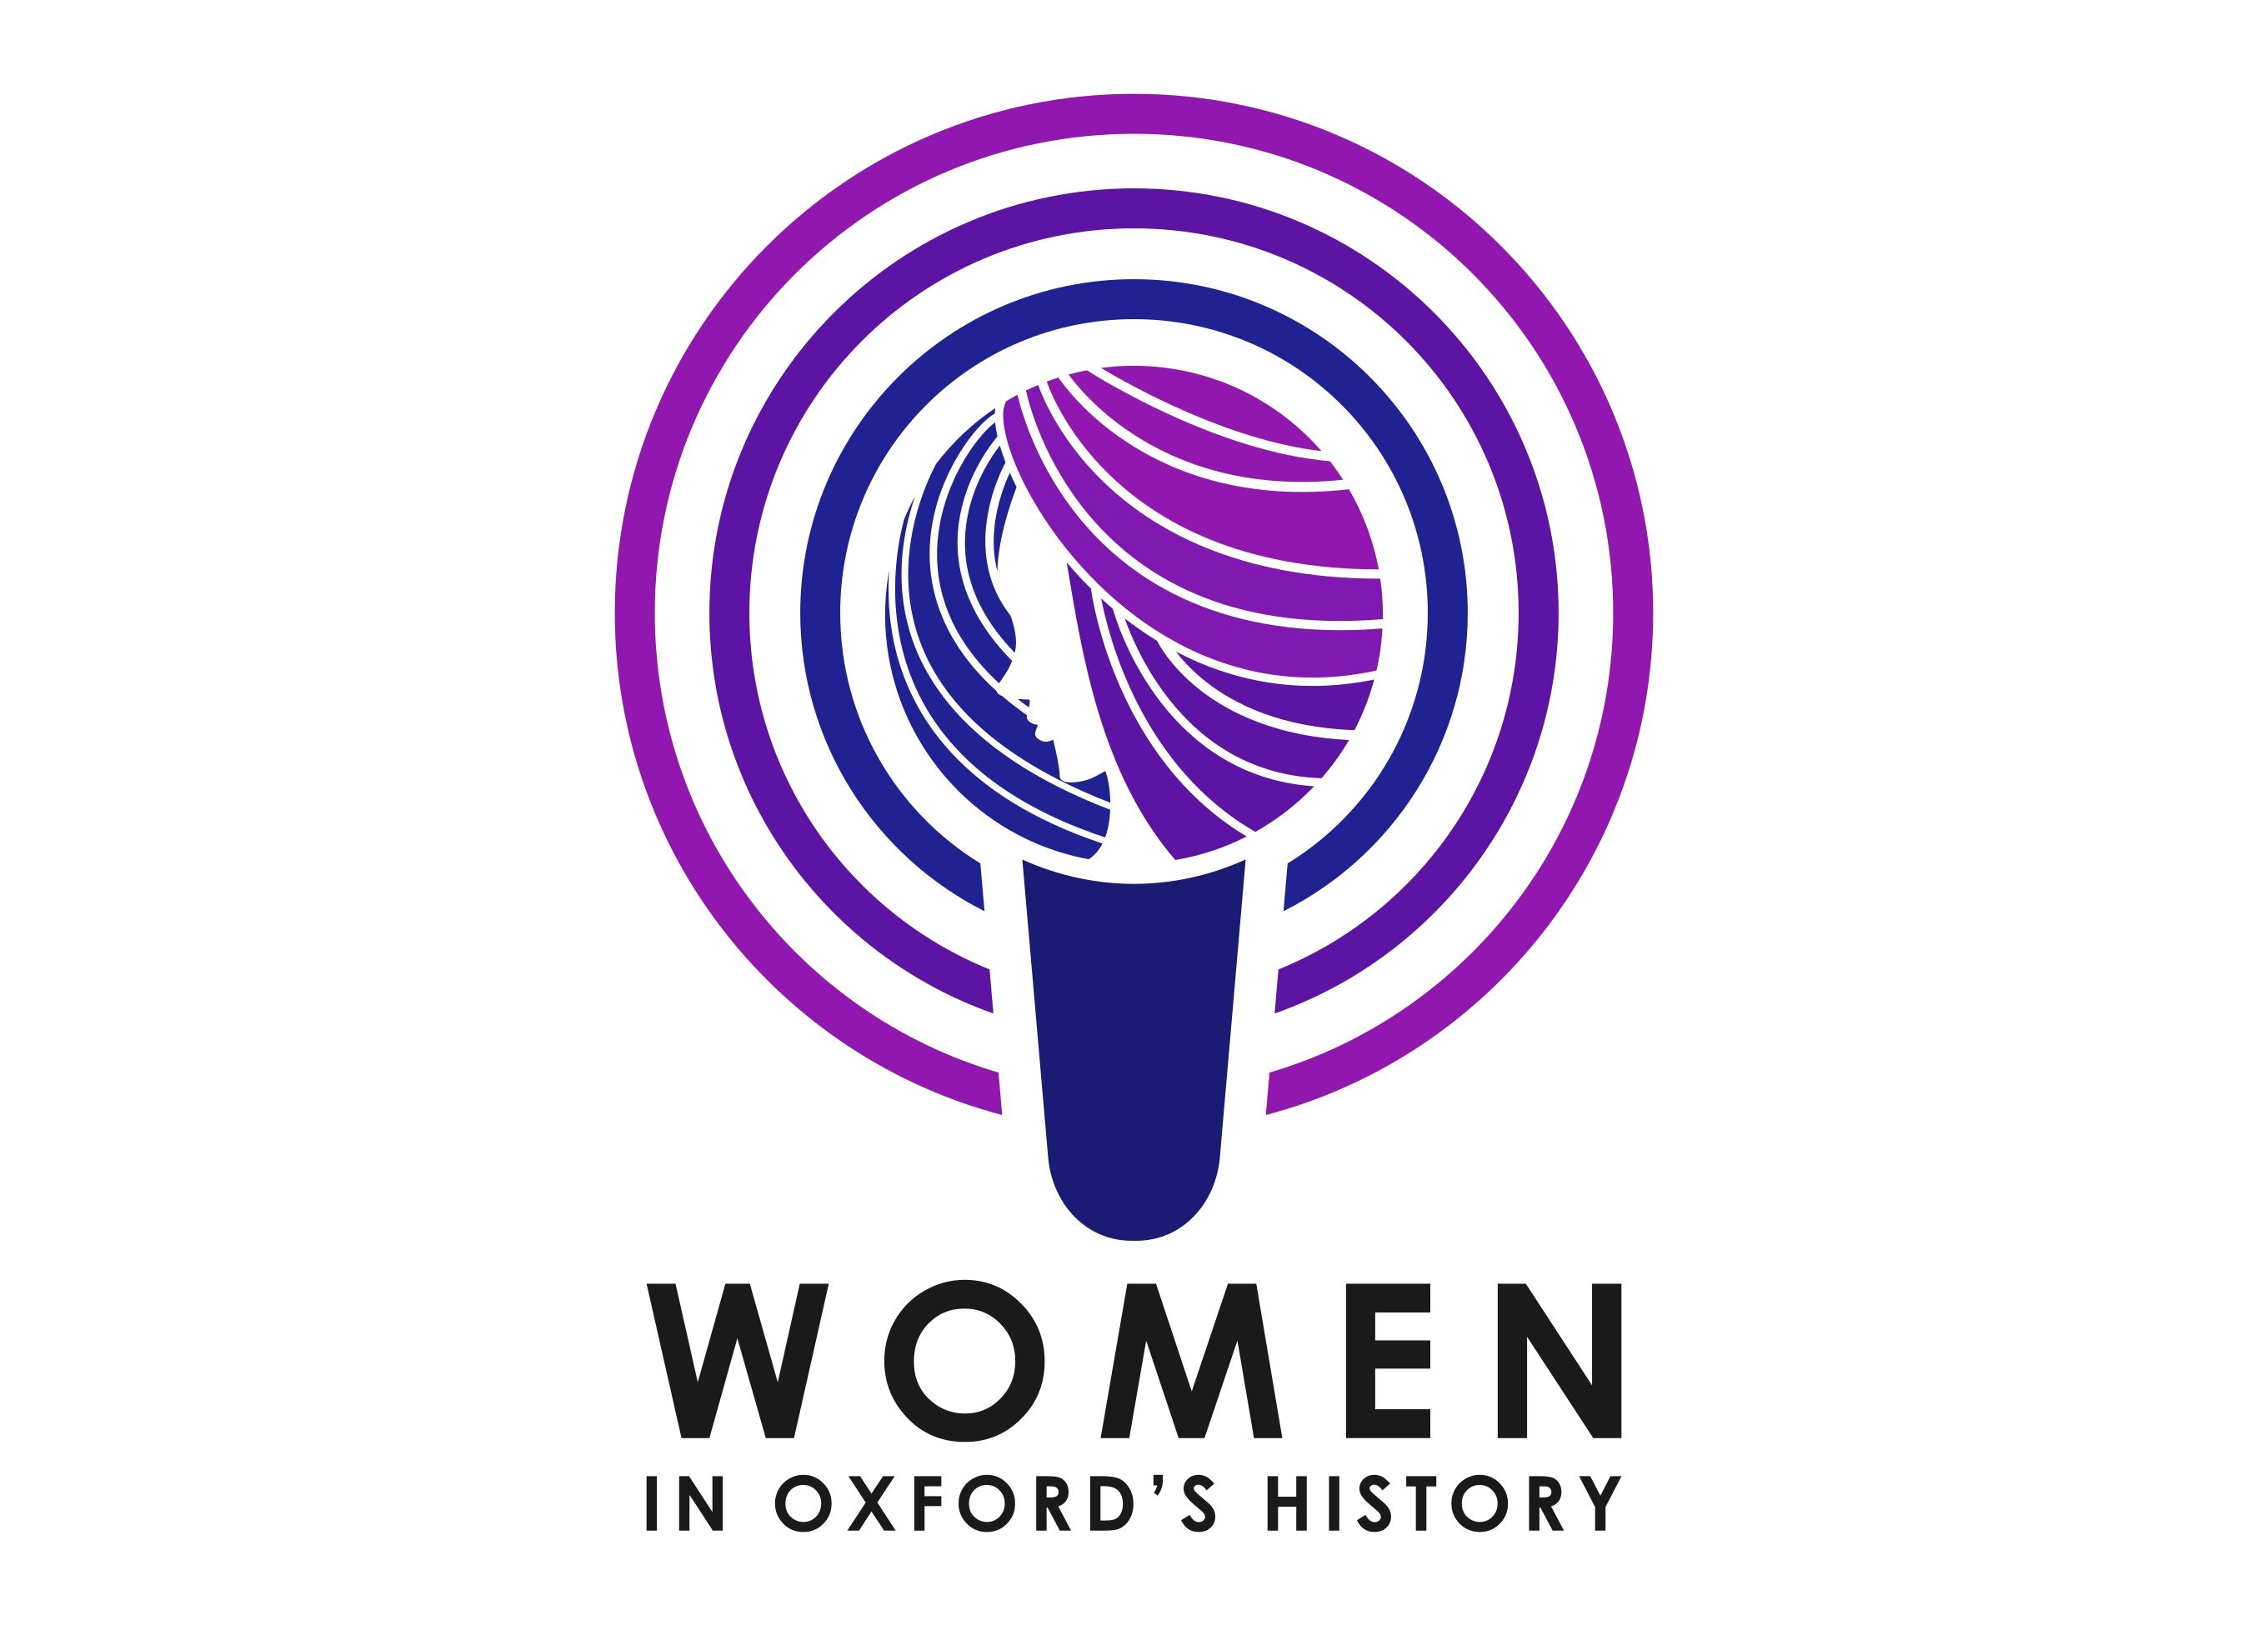 Women in Oxford's History